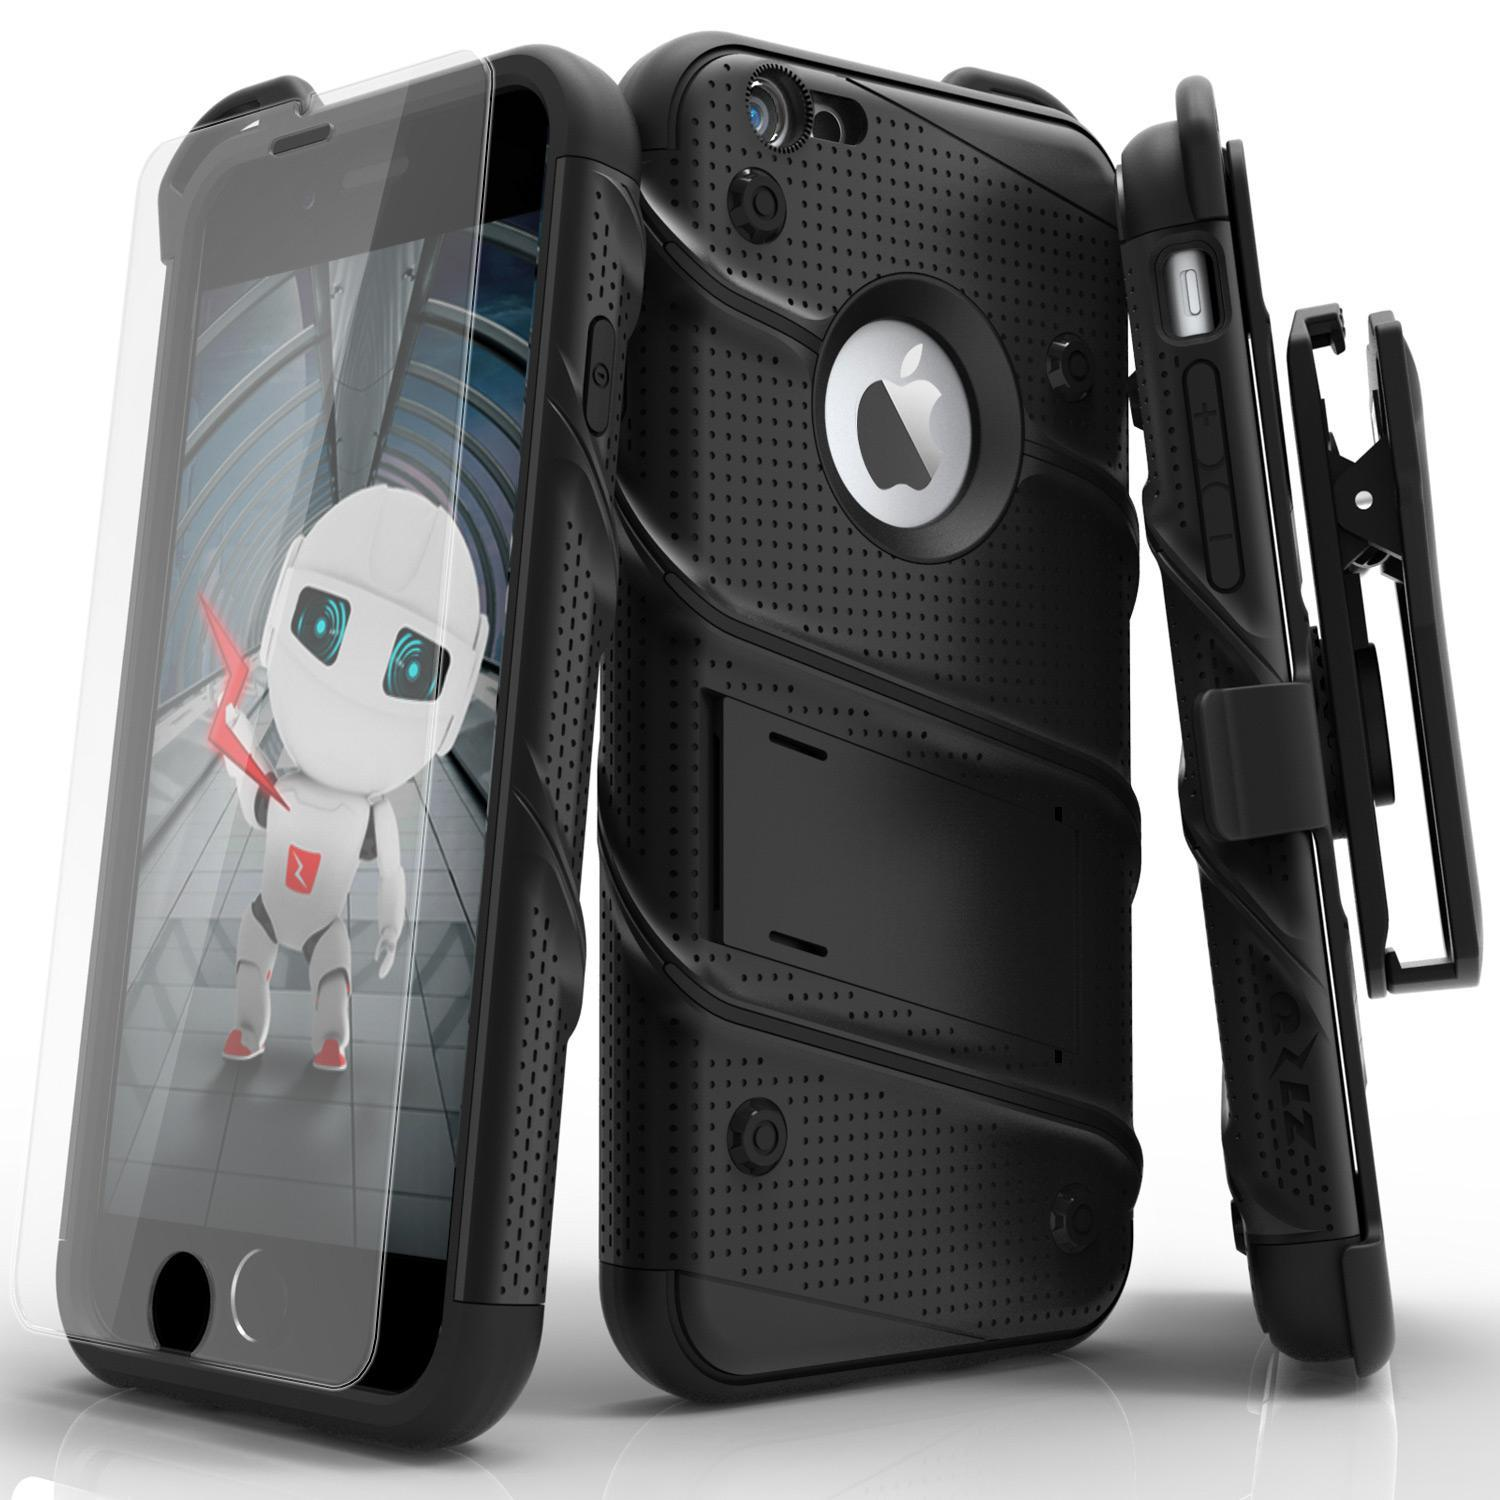 ZIZO BOLT Series for iPhone 6s Plus with Kickstand Holster and Lanyard